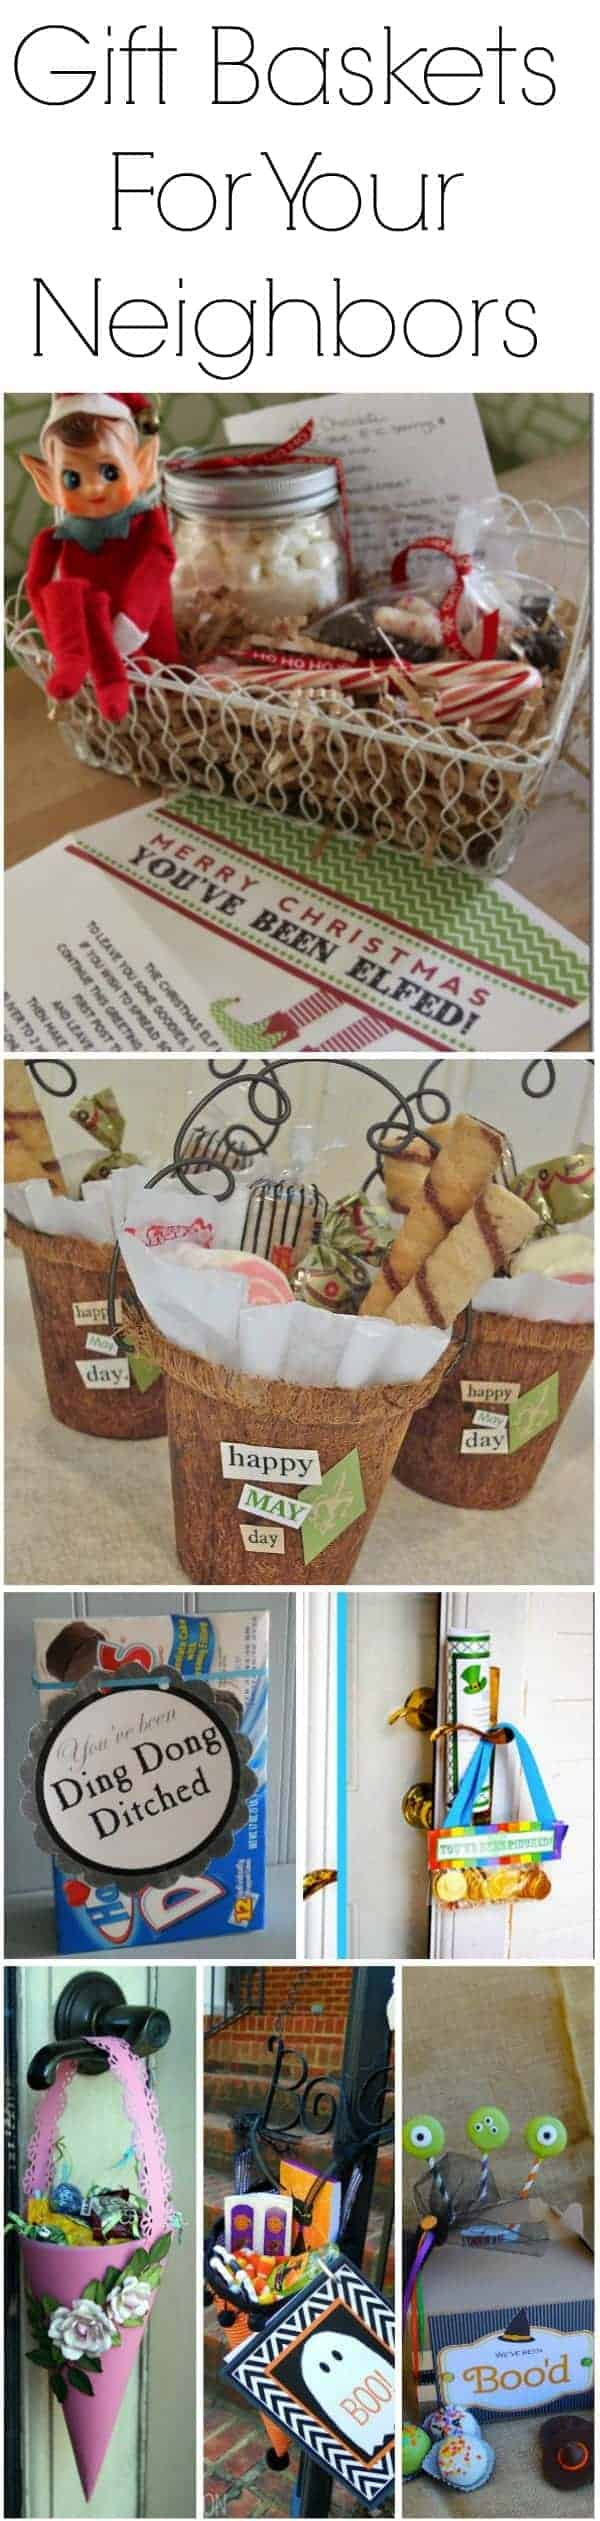 Gift-Baskets-For-Your-Neighbors